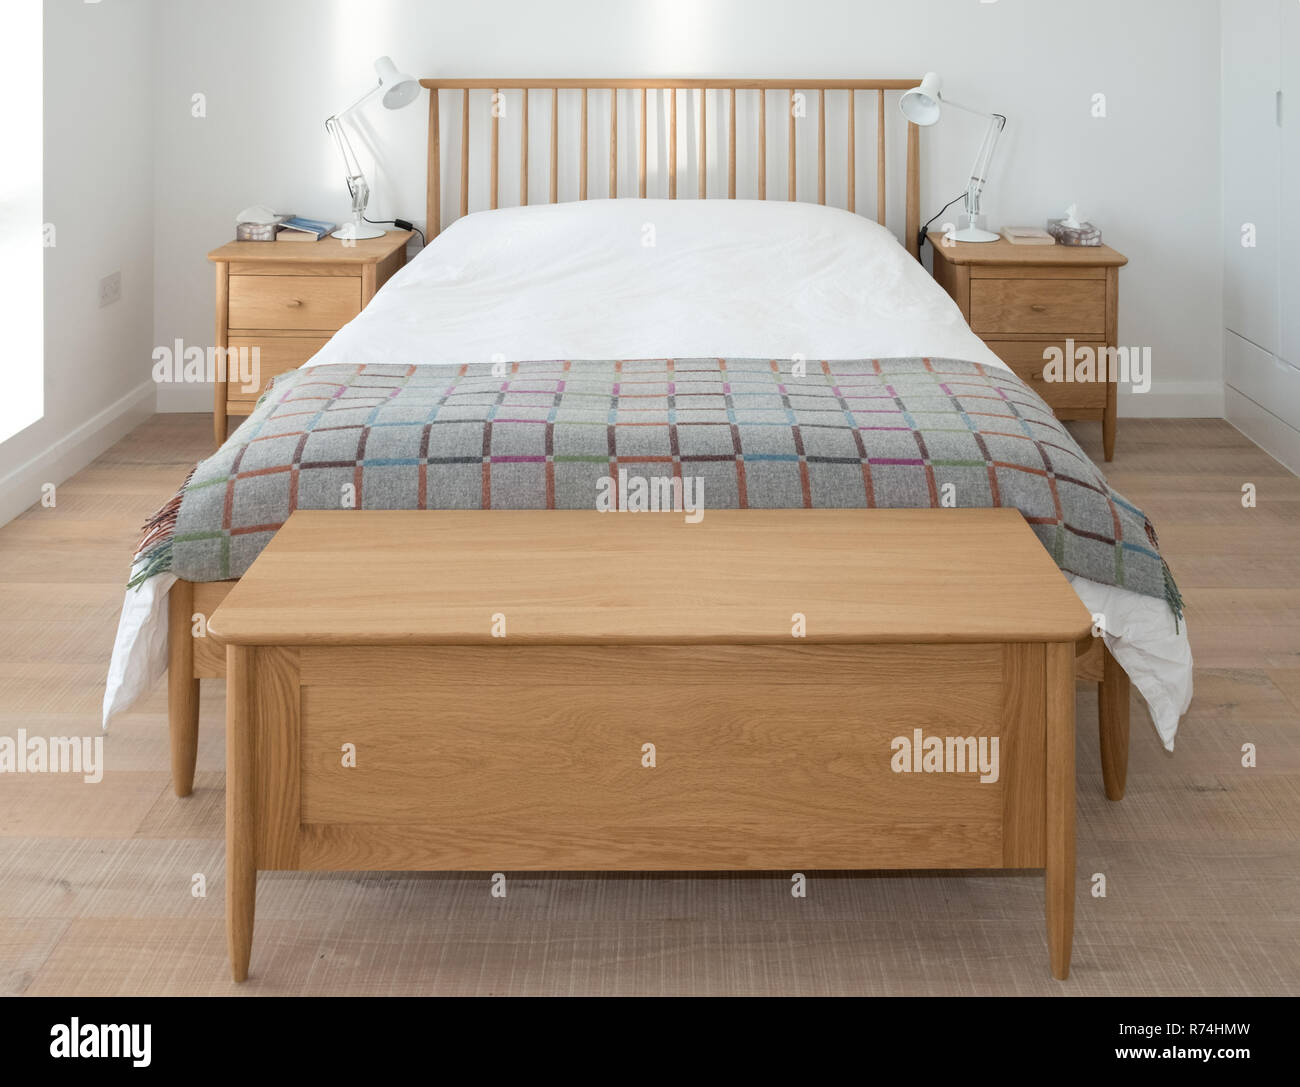 Scandinavian Inspired Minimalist Bedroom Interior Showing Wooden Bedroom Furniture White Painted Walls White Bedding And Colourful Blanket Stock Photo Alamy